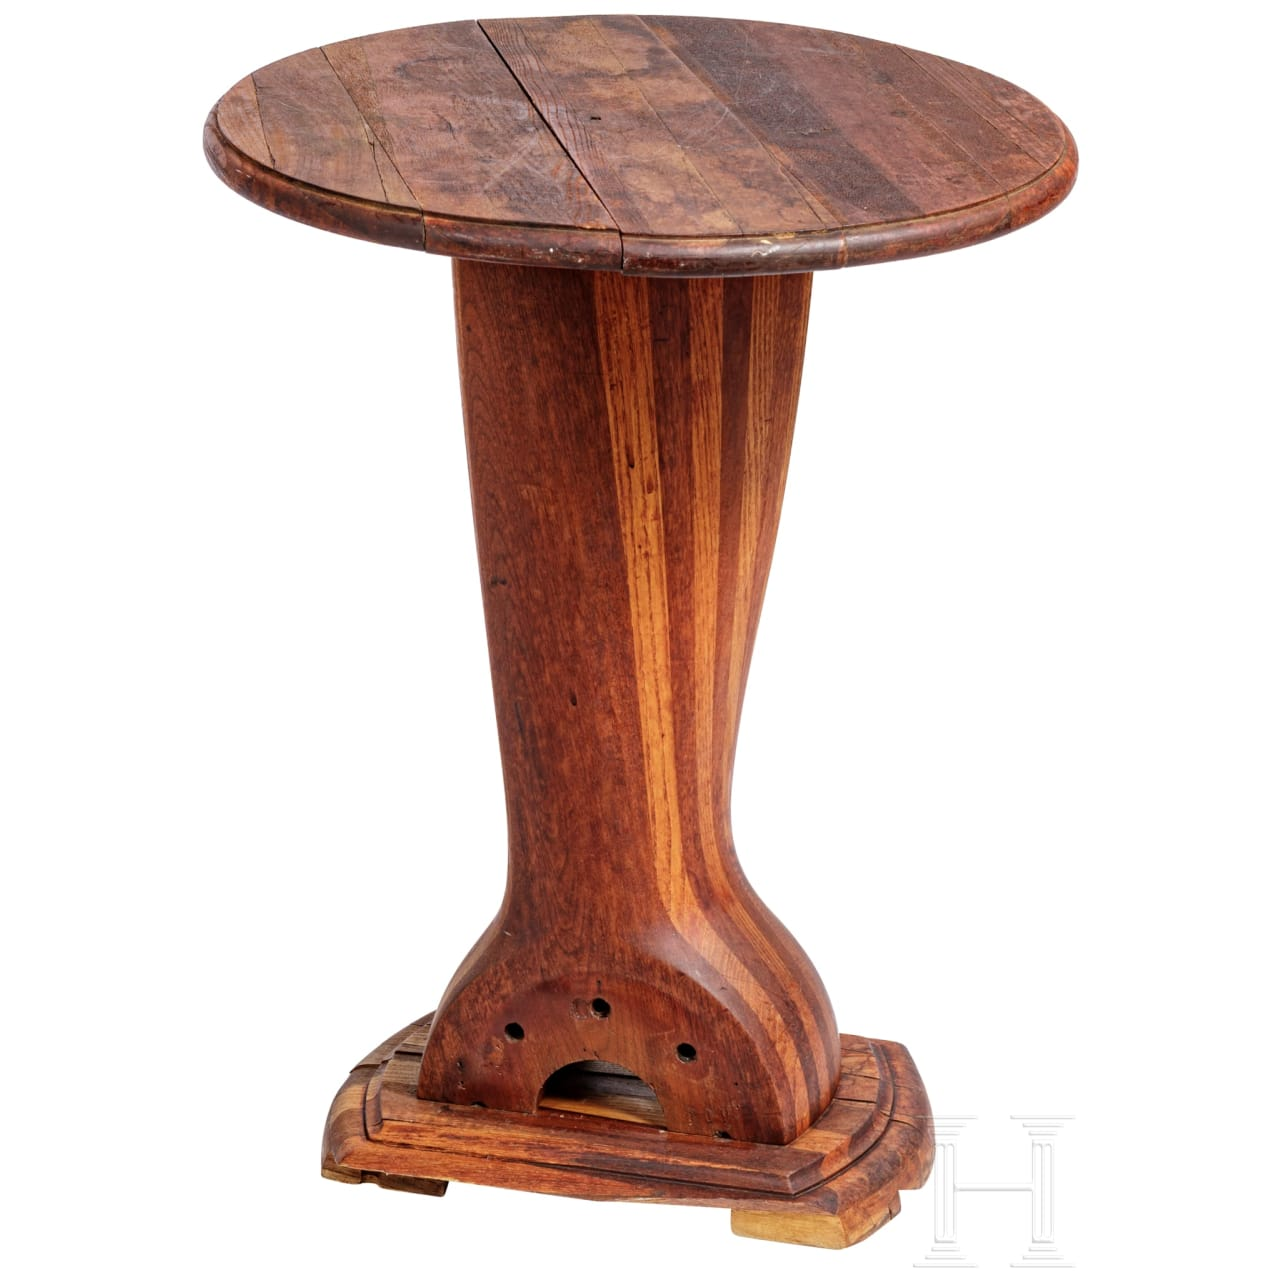 A table from a German aircraft propeller, circa 1918